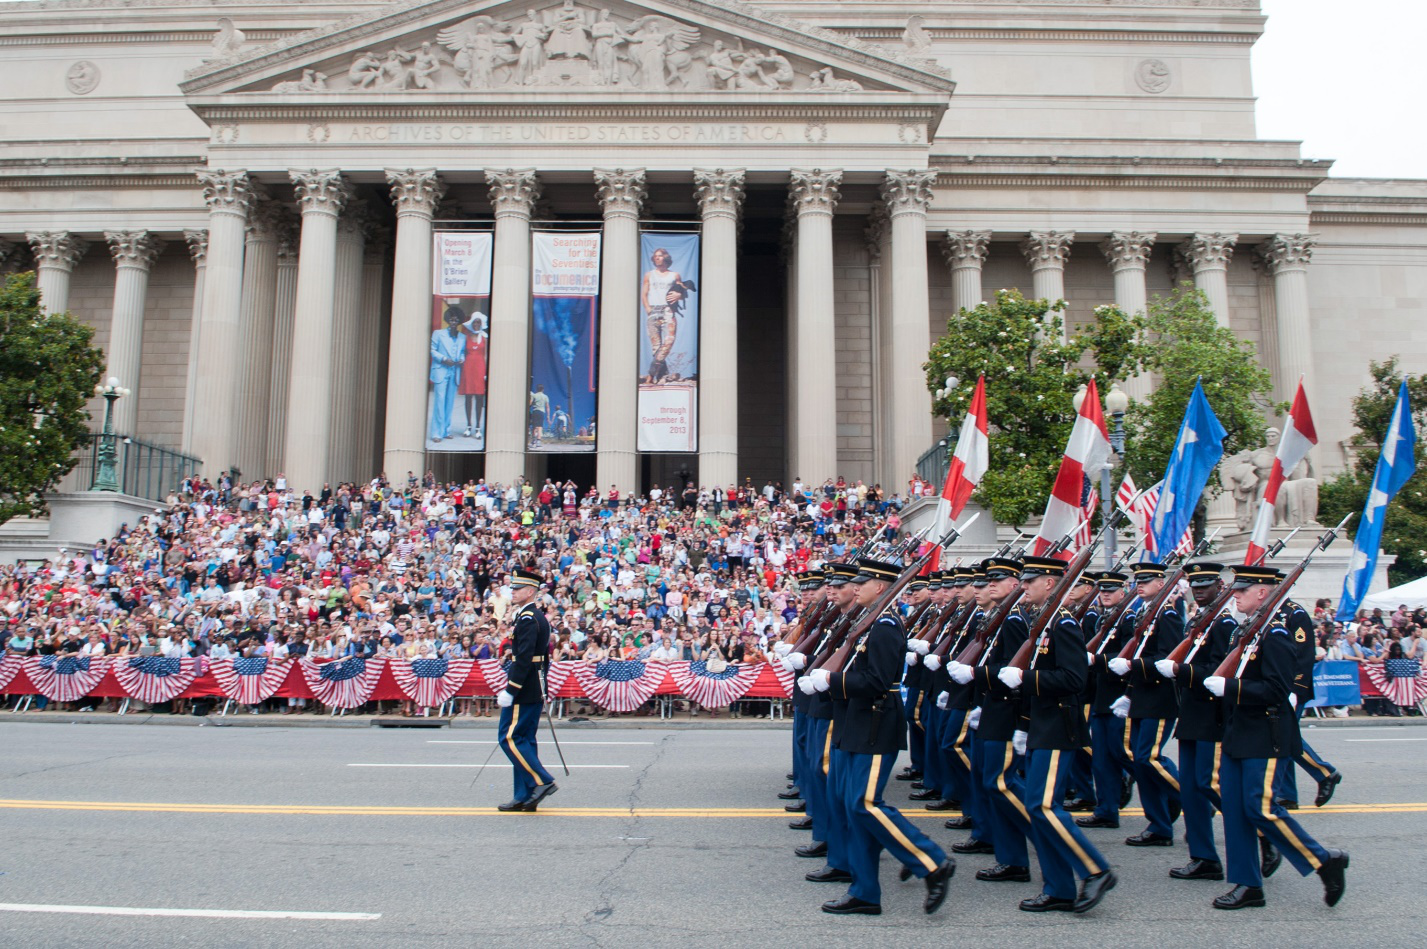 5 Free Things to Do in Washington D.C. on Memorial Day Weekend - The National Memorial Day Parade